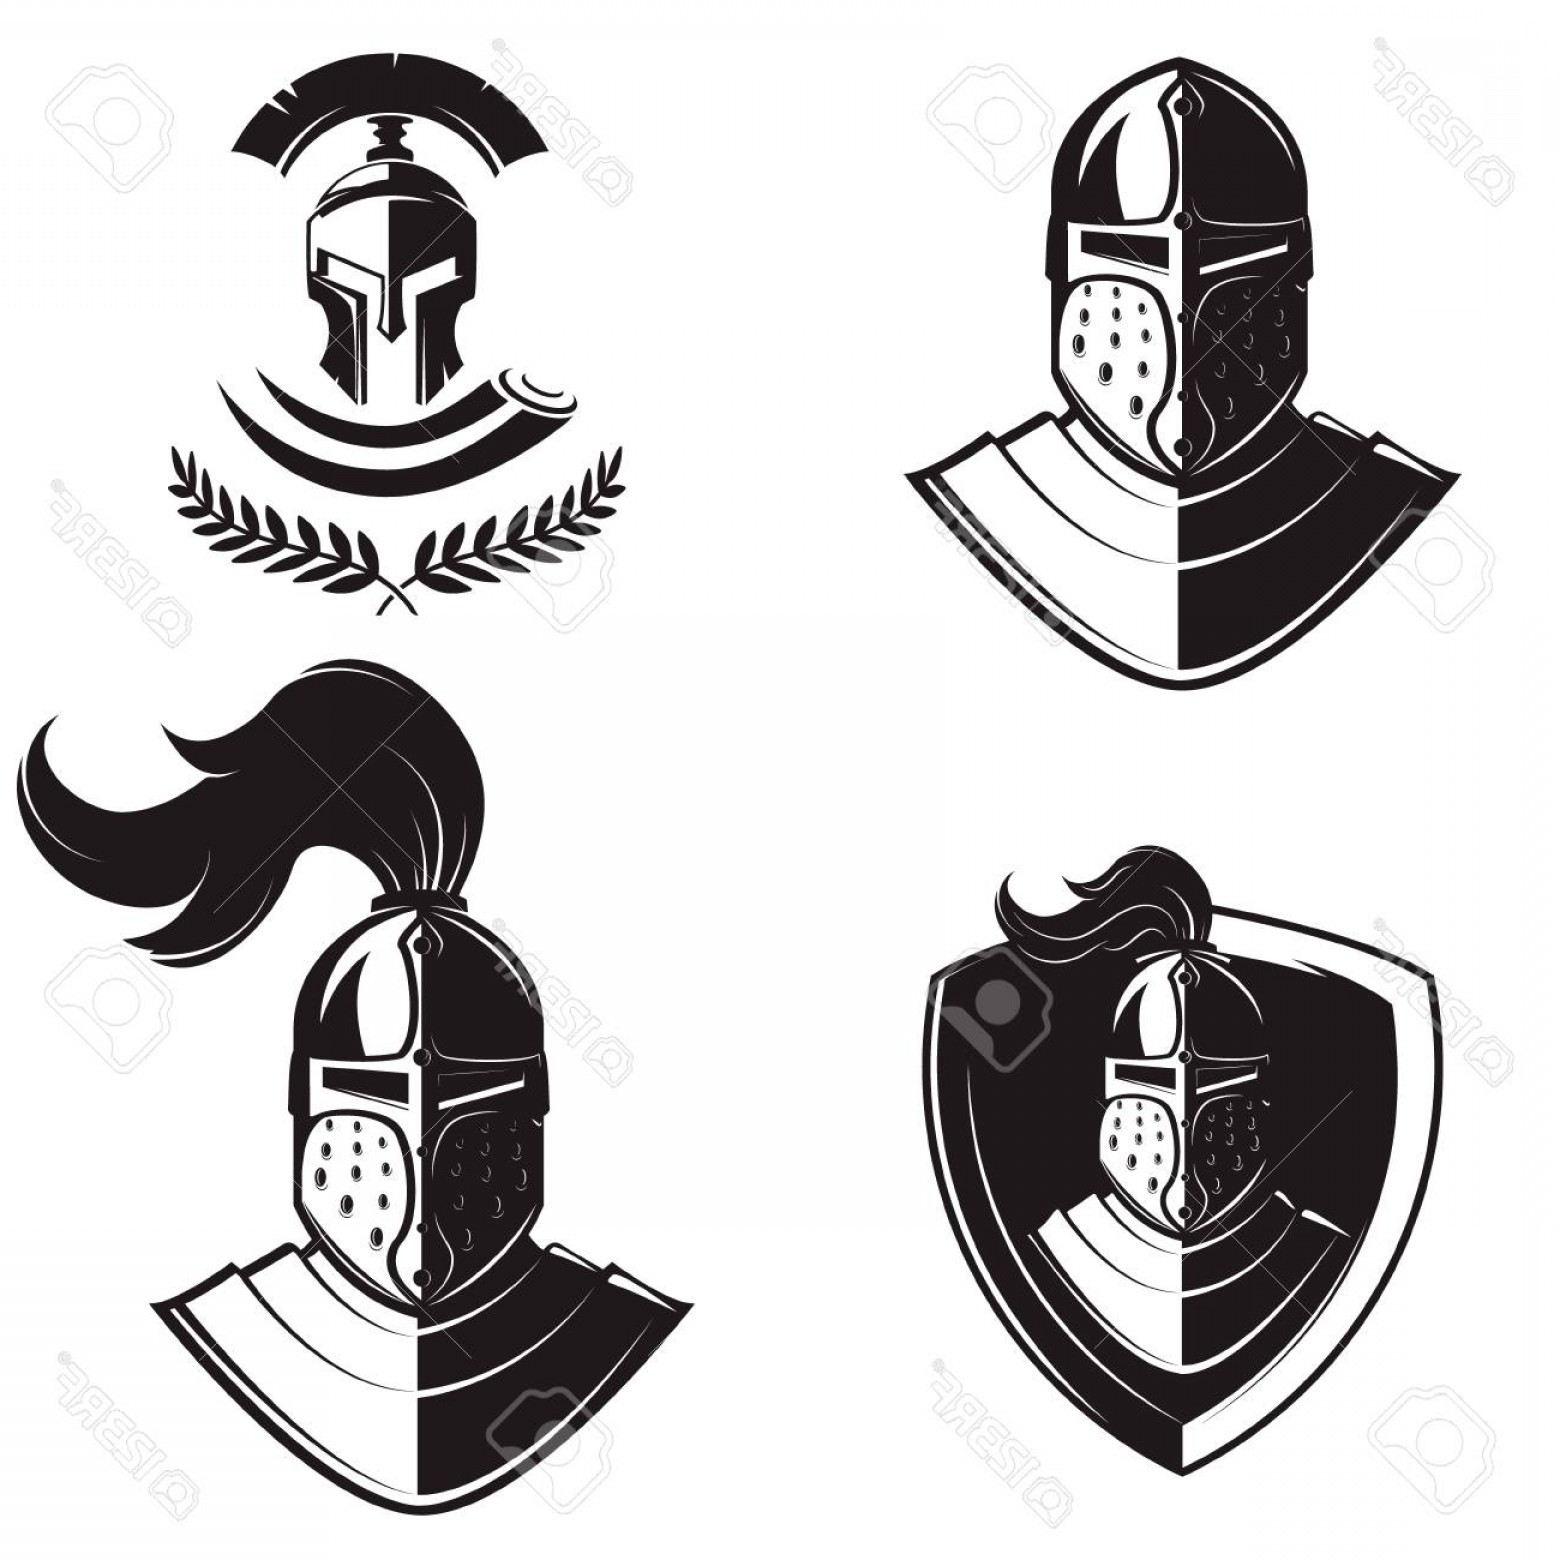 Boba Fett Vector Black And White: Photostock Vector Set Of Knights Helmets Isolated On White Background